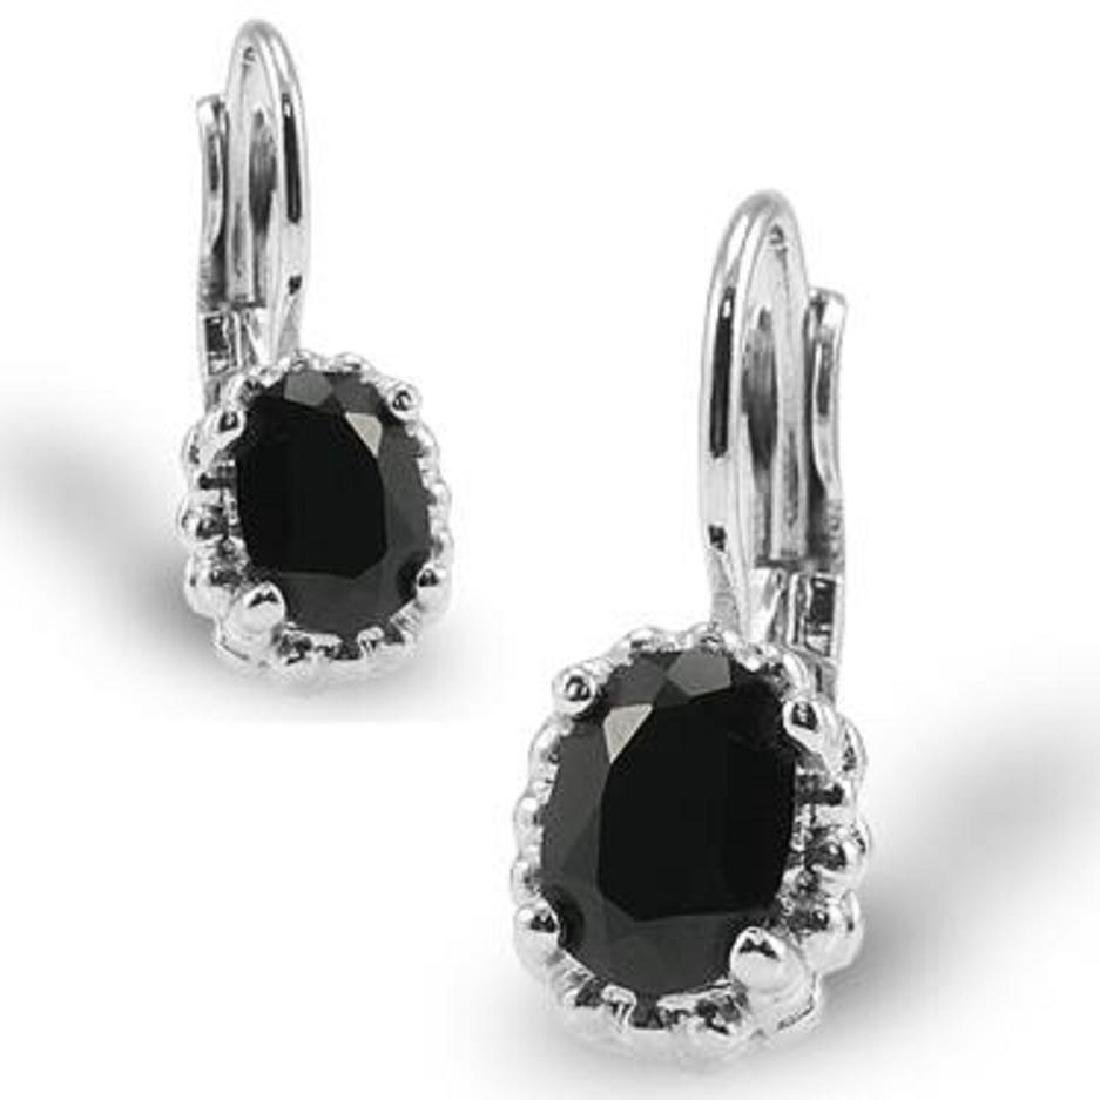 Genuine Black Onyx Leverback Earrings